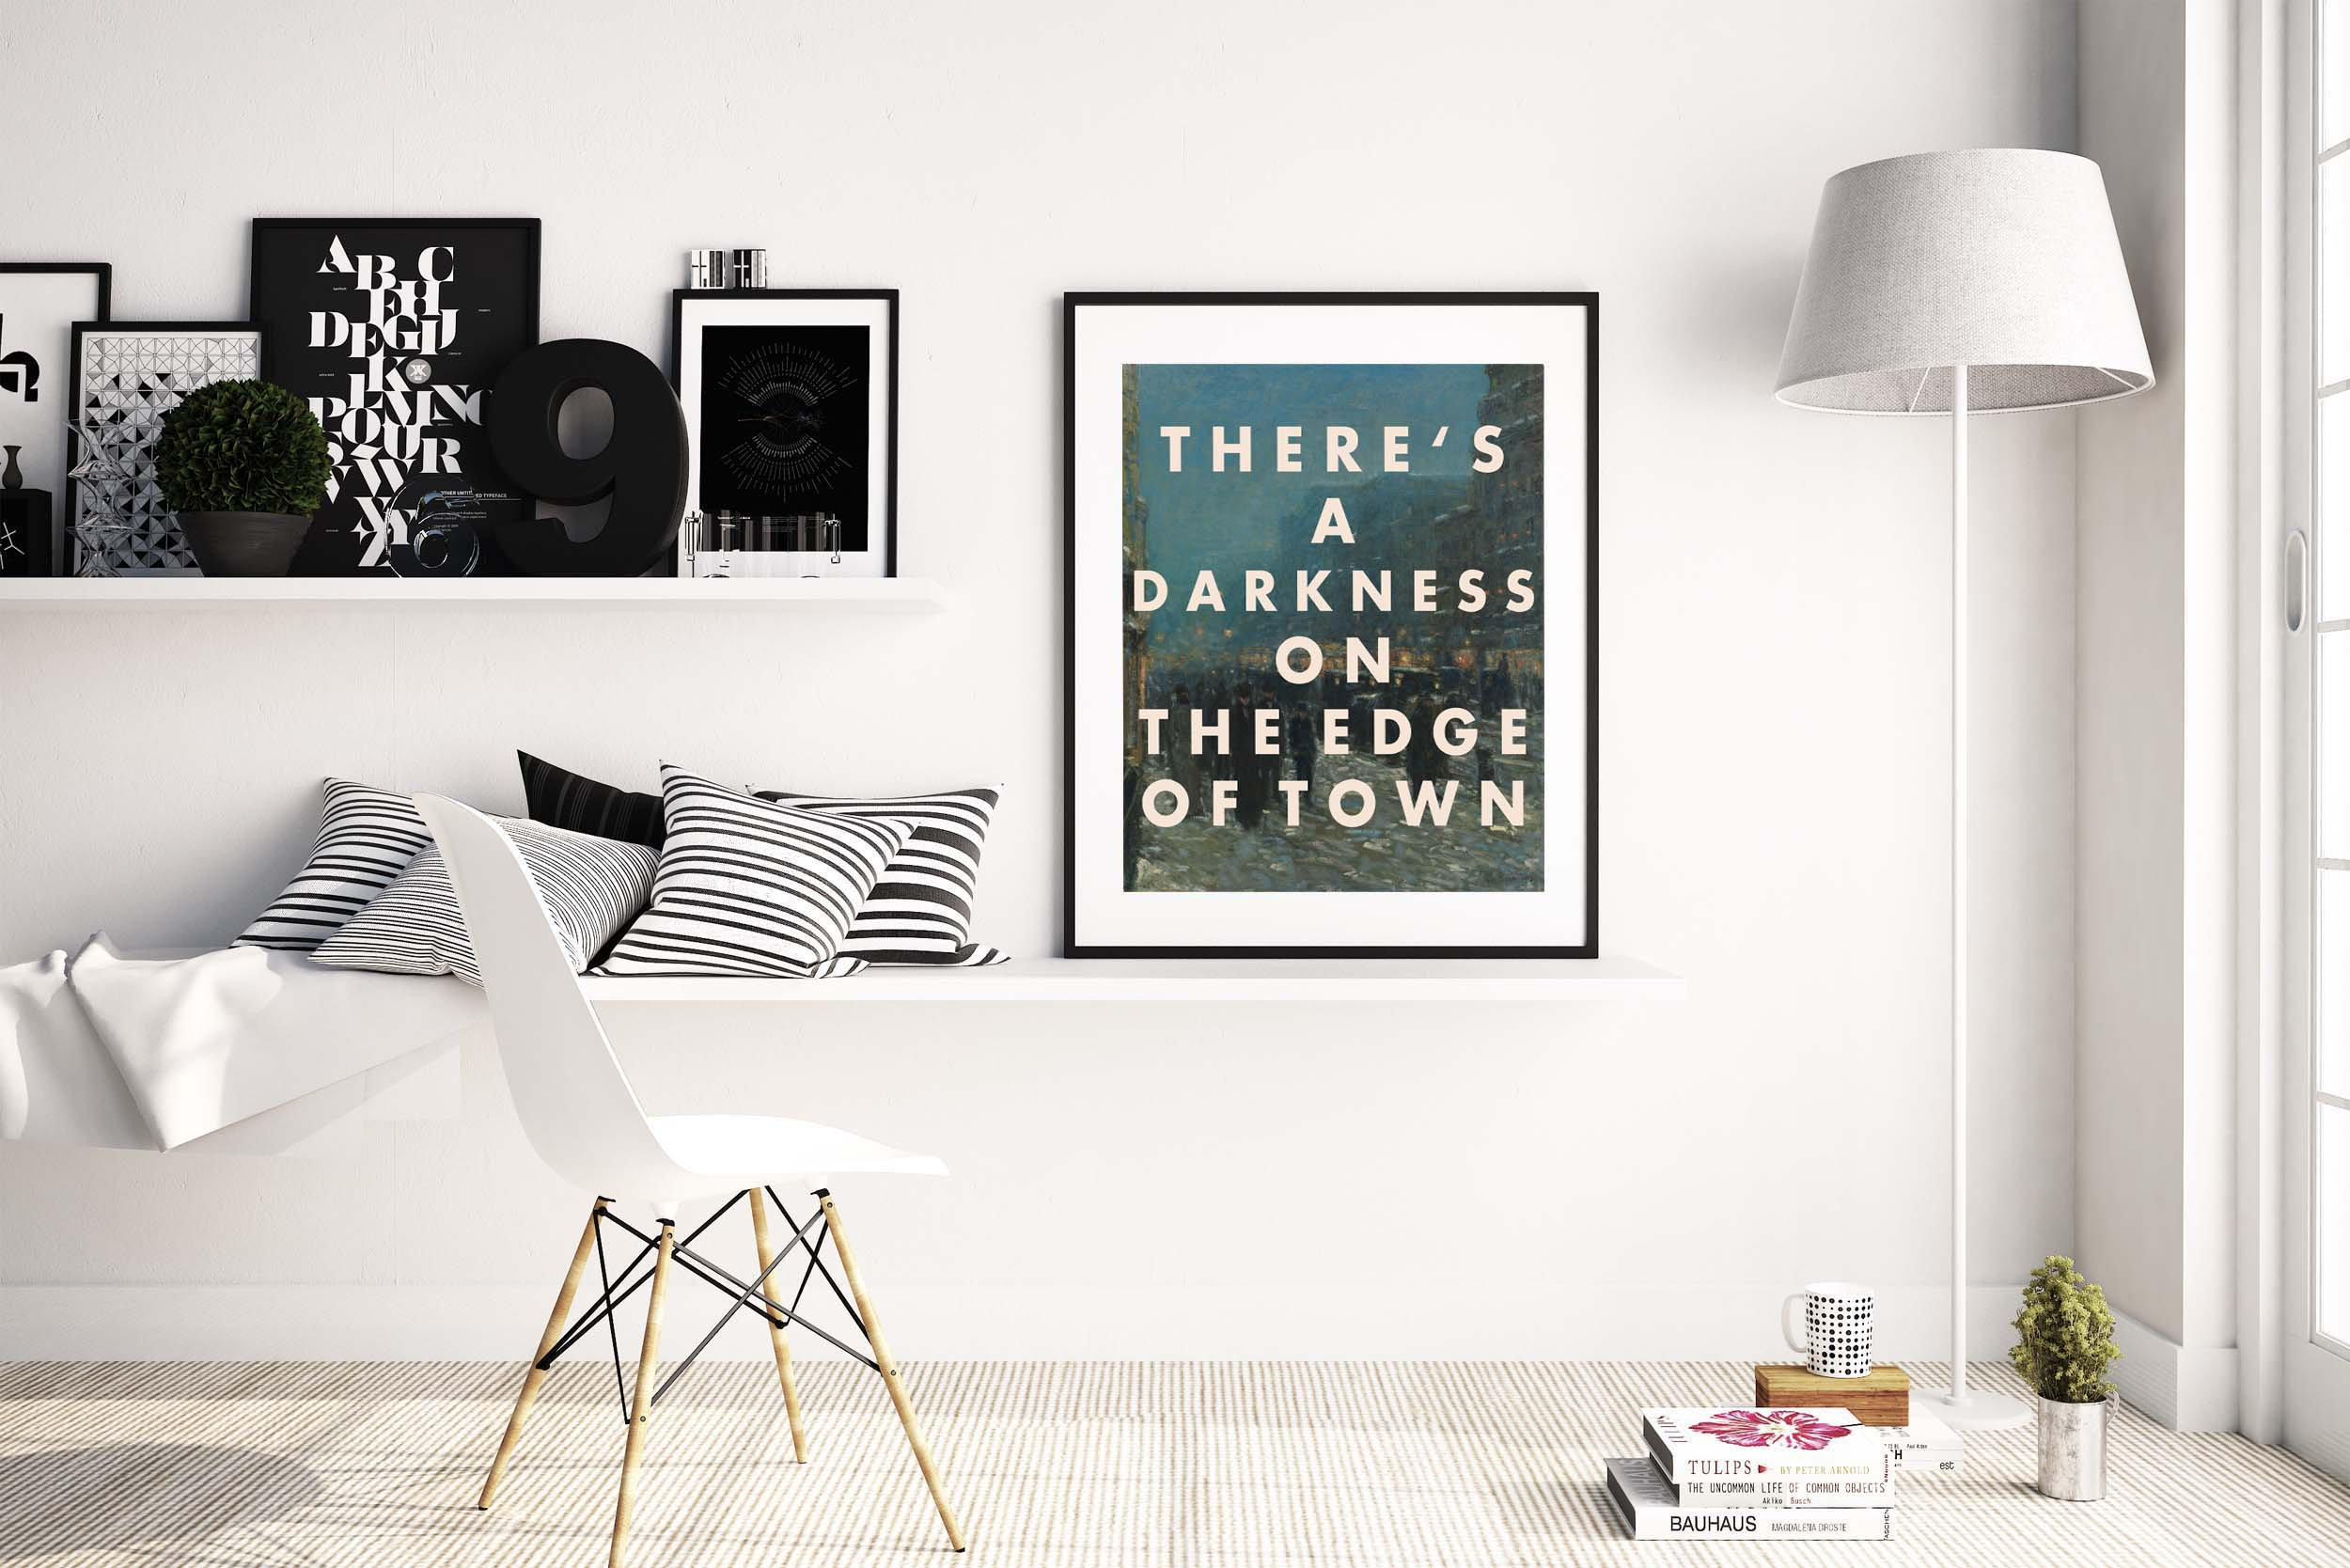 BRUCE SPRINGSTEEN Print, Wall Art Print, Song Lyric, 8x10 Print, Rock, Darkness on the Edge of Town, Home Decor, Bedroom Art, Vintage Style